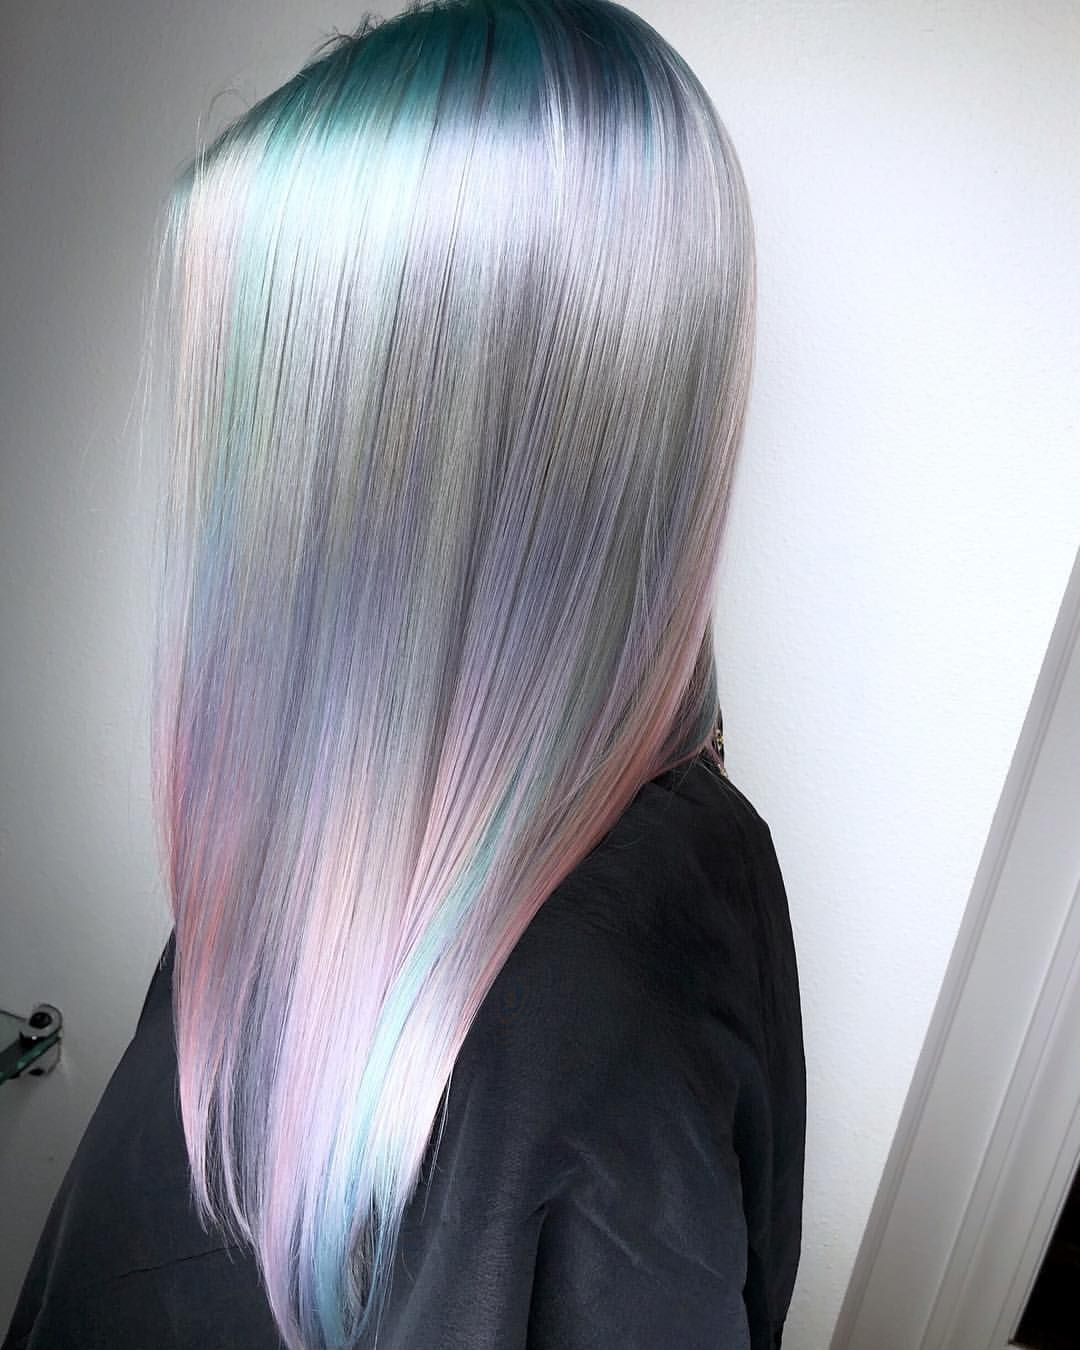 pravana-vivid-hair-color-454707-pin-by-katy-wharton-on-m-a-n-e-pinterest.jpg